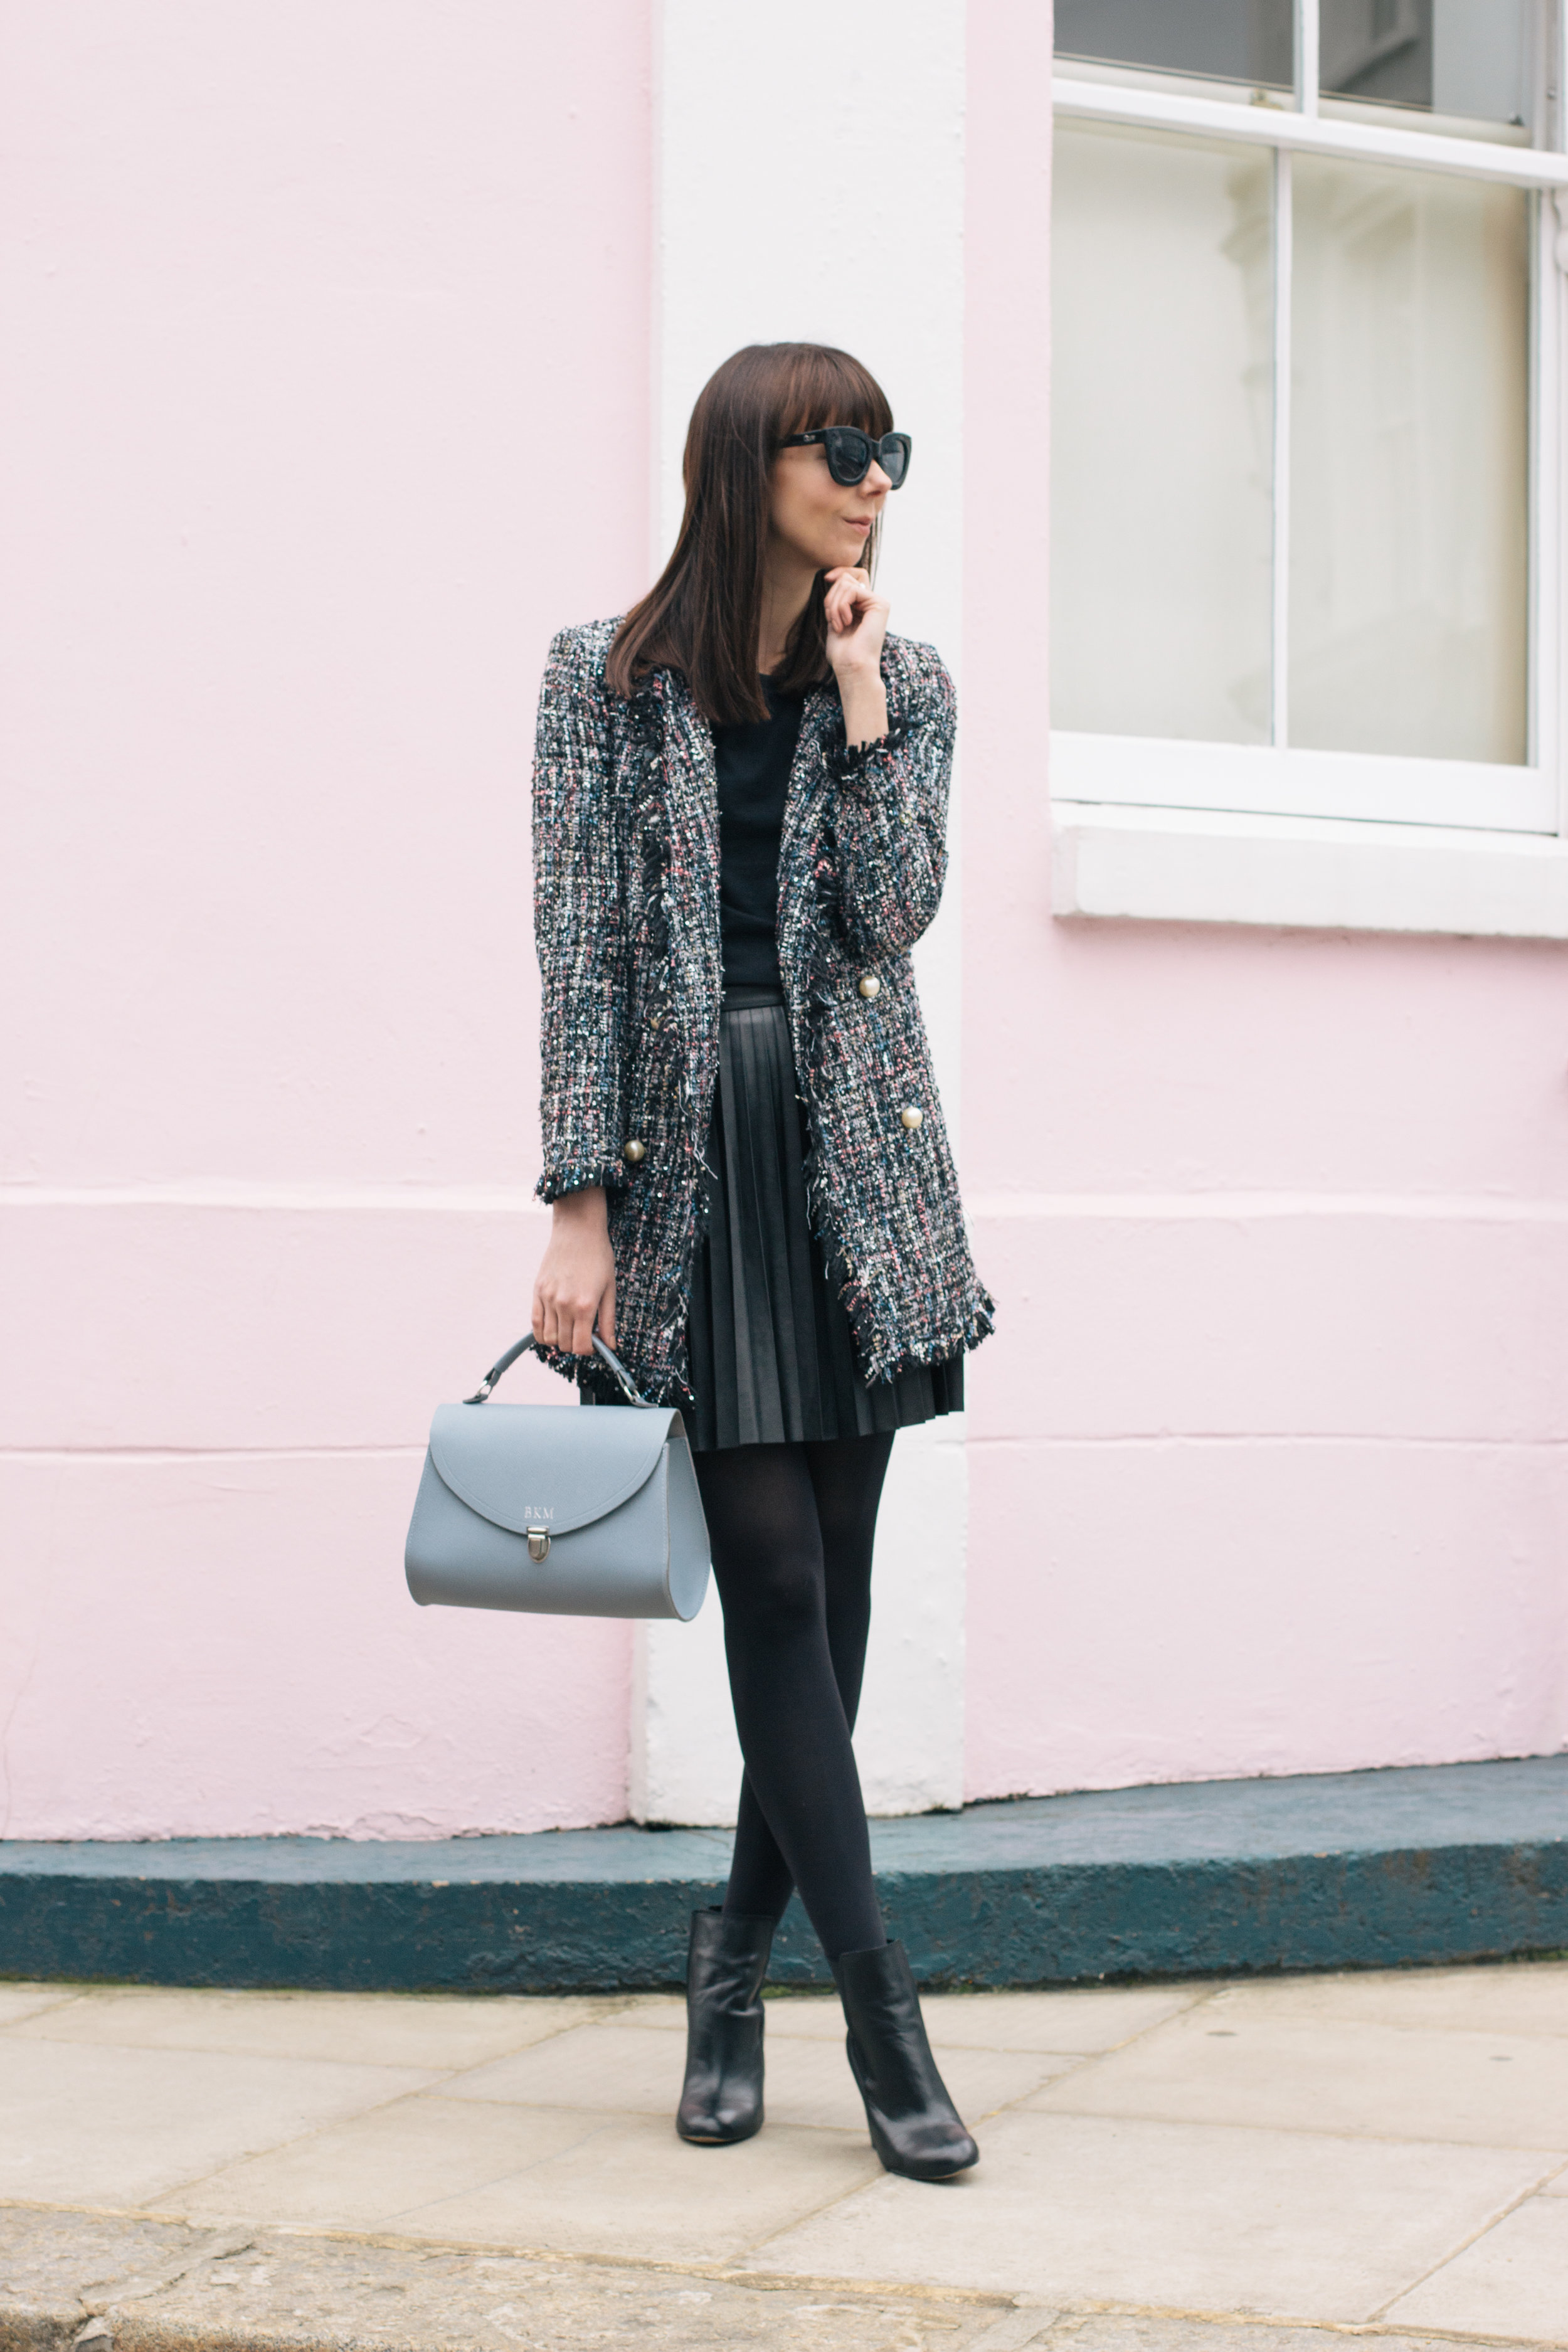 Wandering the colorful streets of Notting Hill wearing a Chanel lookalike jacket, a Cambridge Satchel Company bag, Sam Edelman booties and J.Crew pleated skirt | Pink House, Blue Bag | Sundays and Somedays